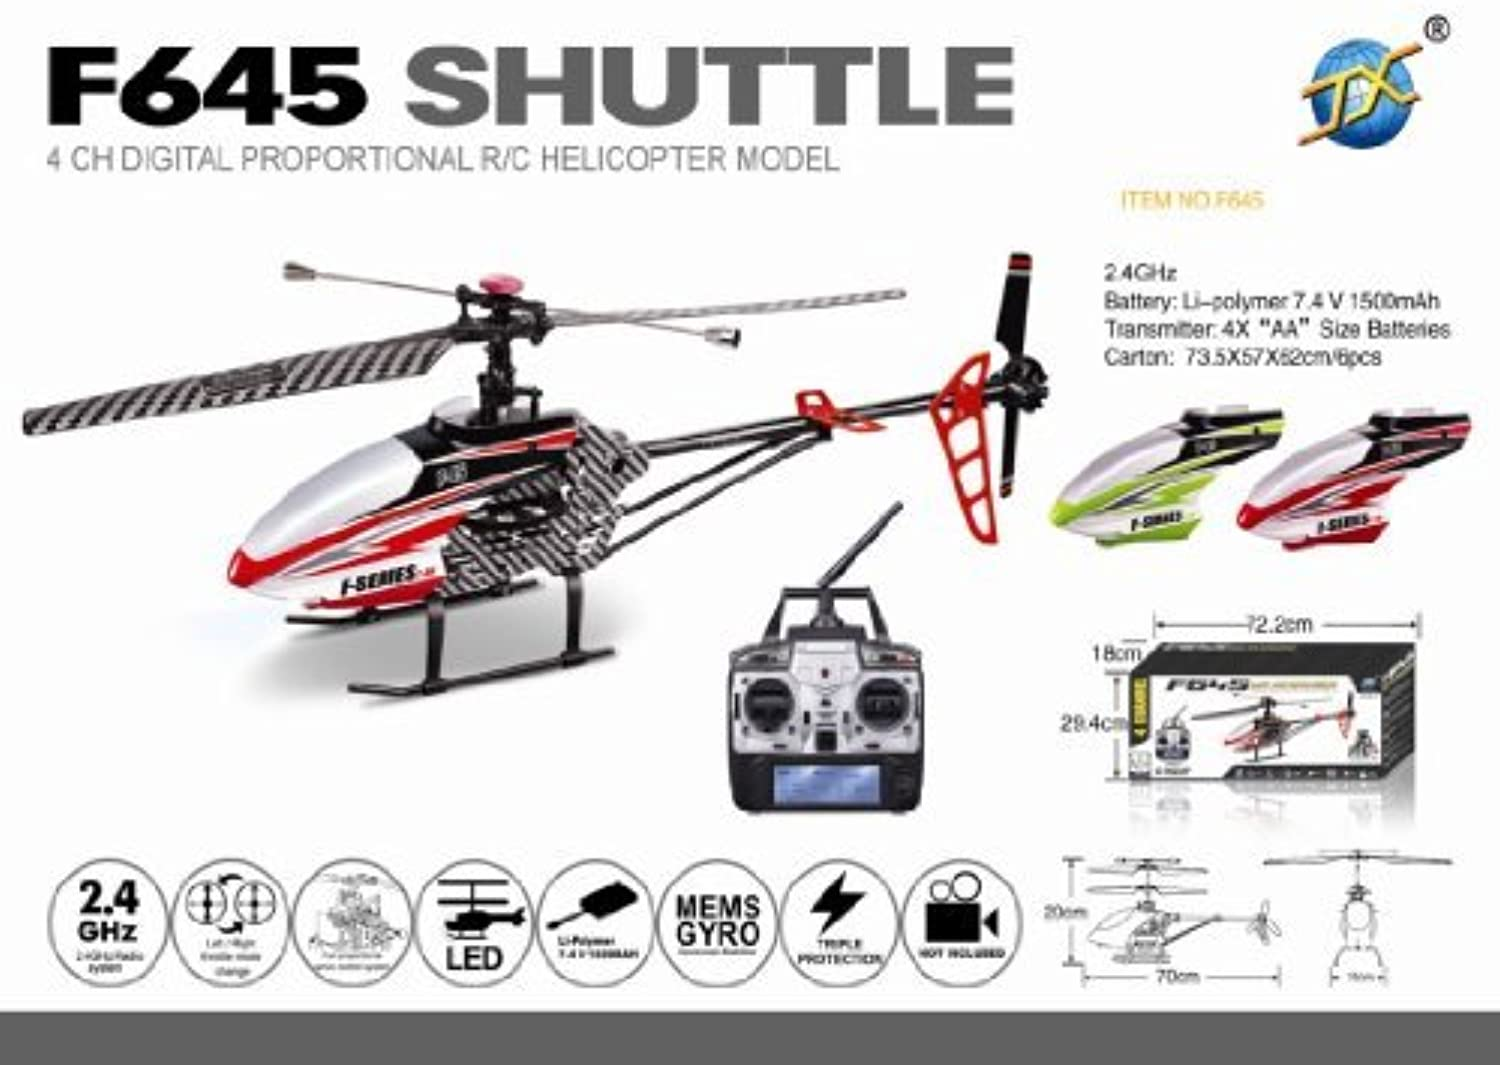 28 MJX 2.4g Lcd pro 70cm 4 Channel Sigle-rotor Rc Helicopter by Club Penguin